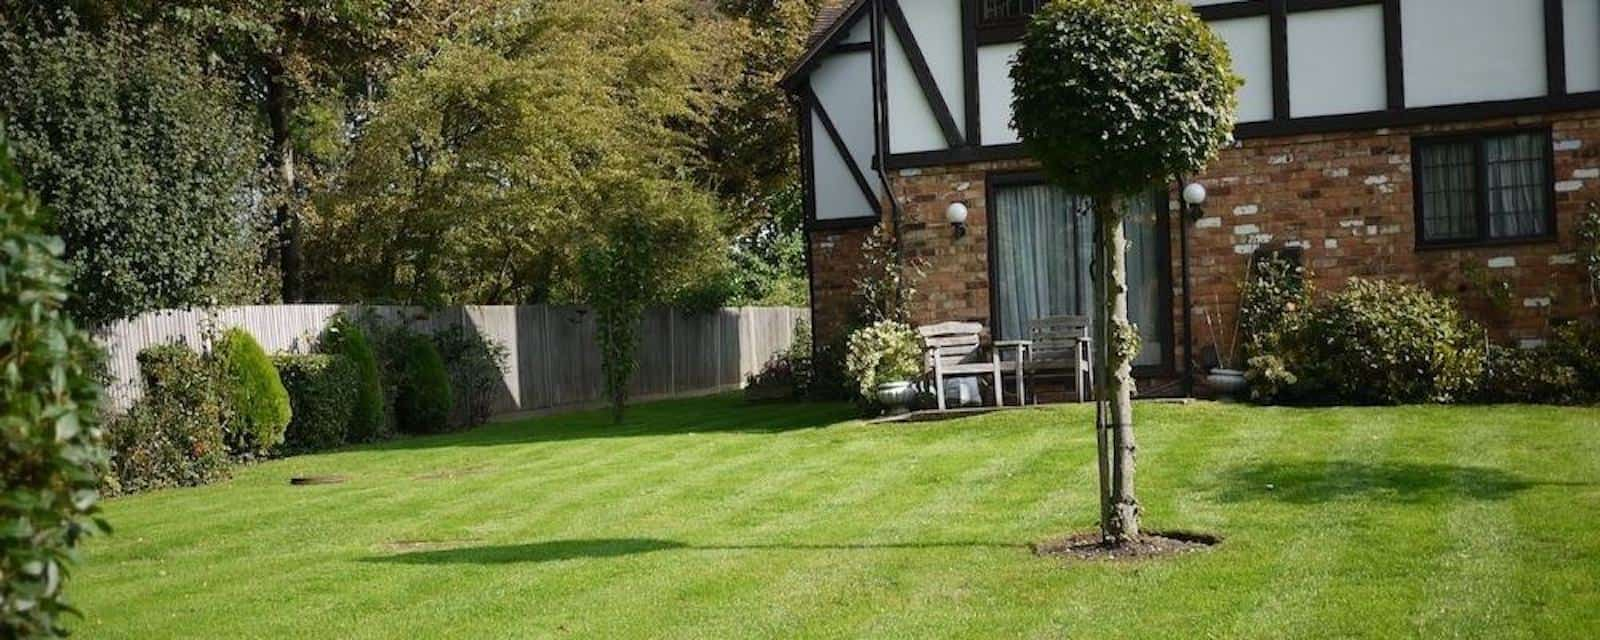 Domestic Garden Maintenance London Picture